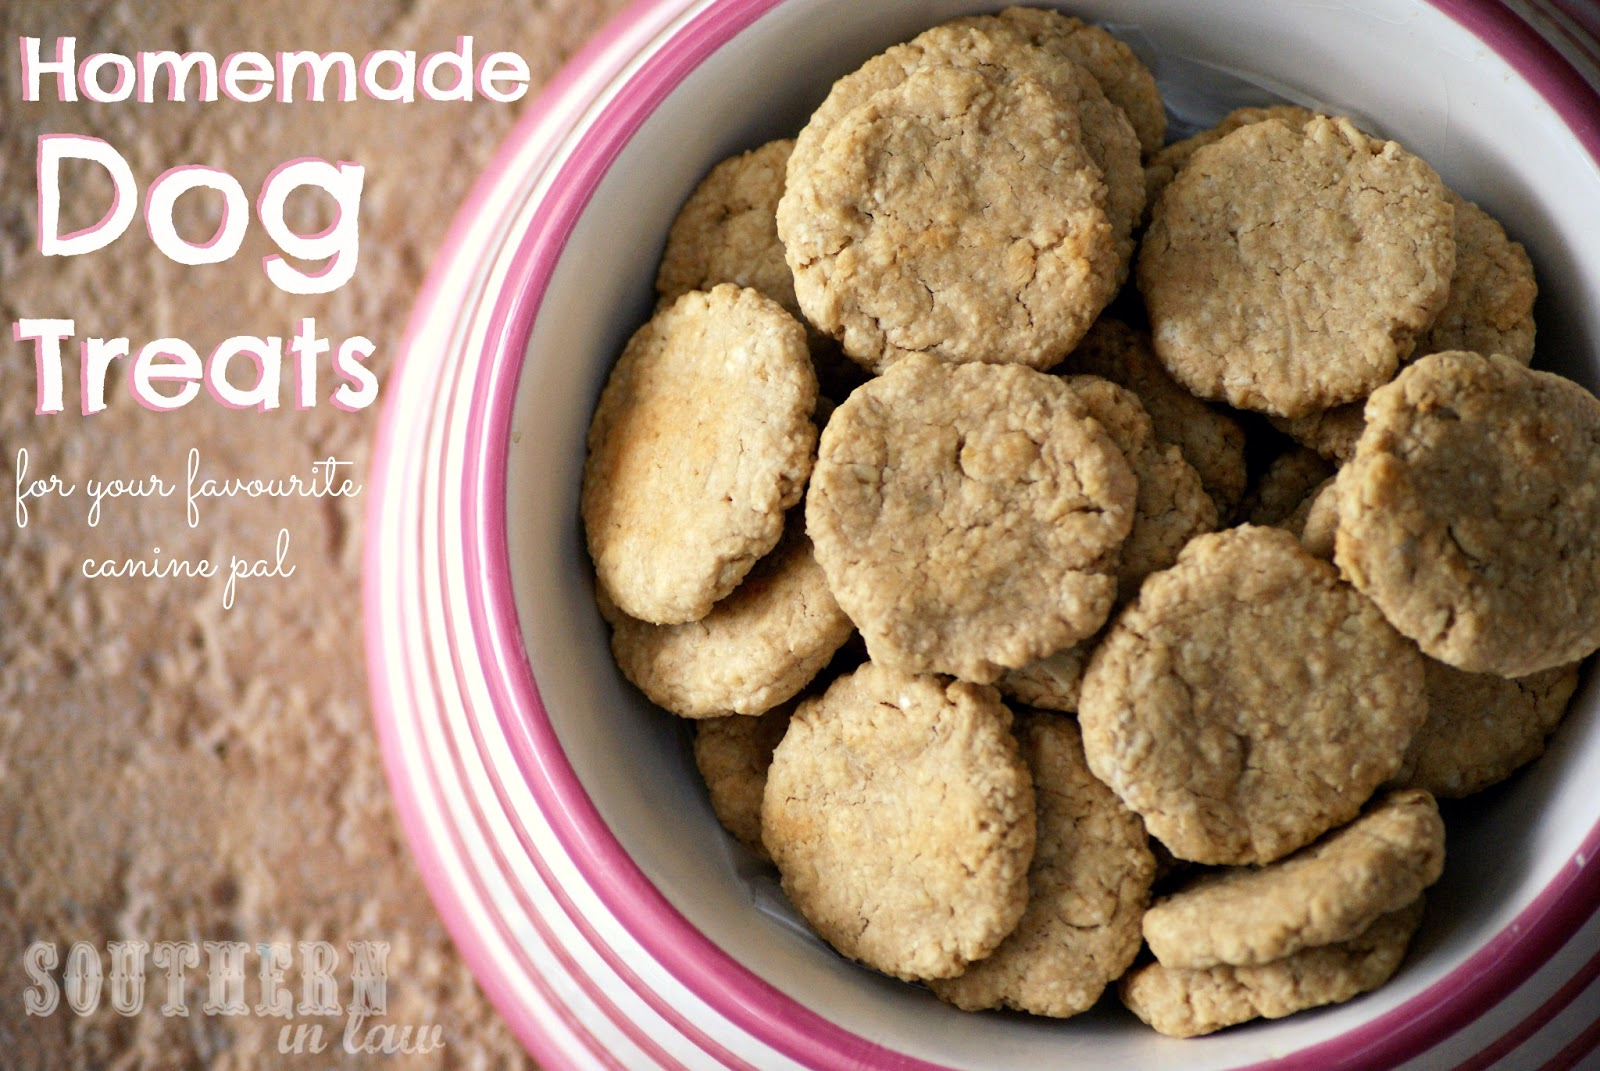 Southern In Law Homemade Dog Treats Recipe